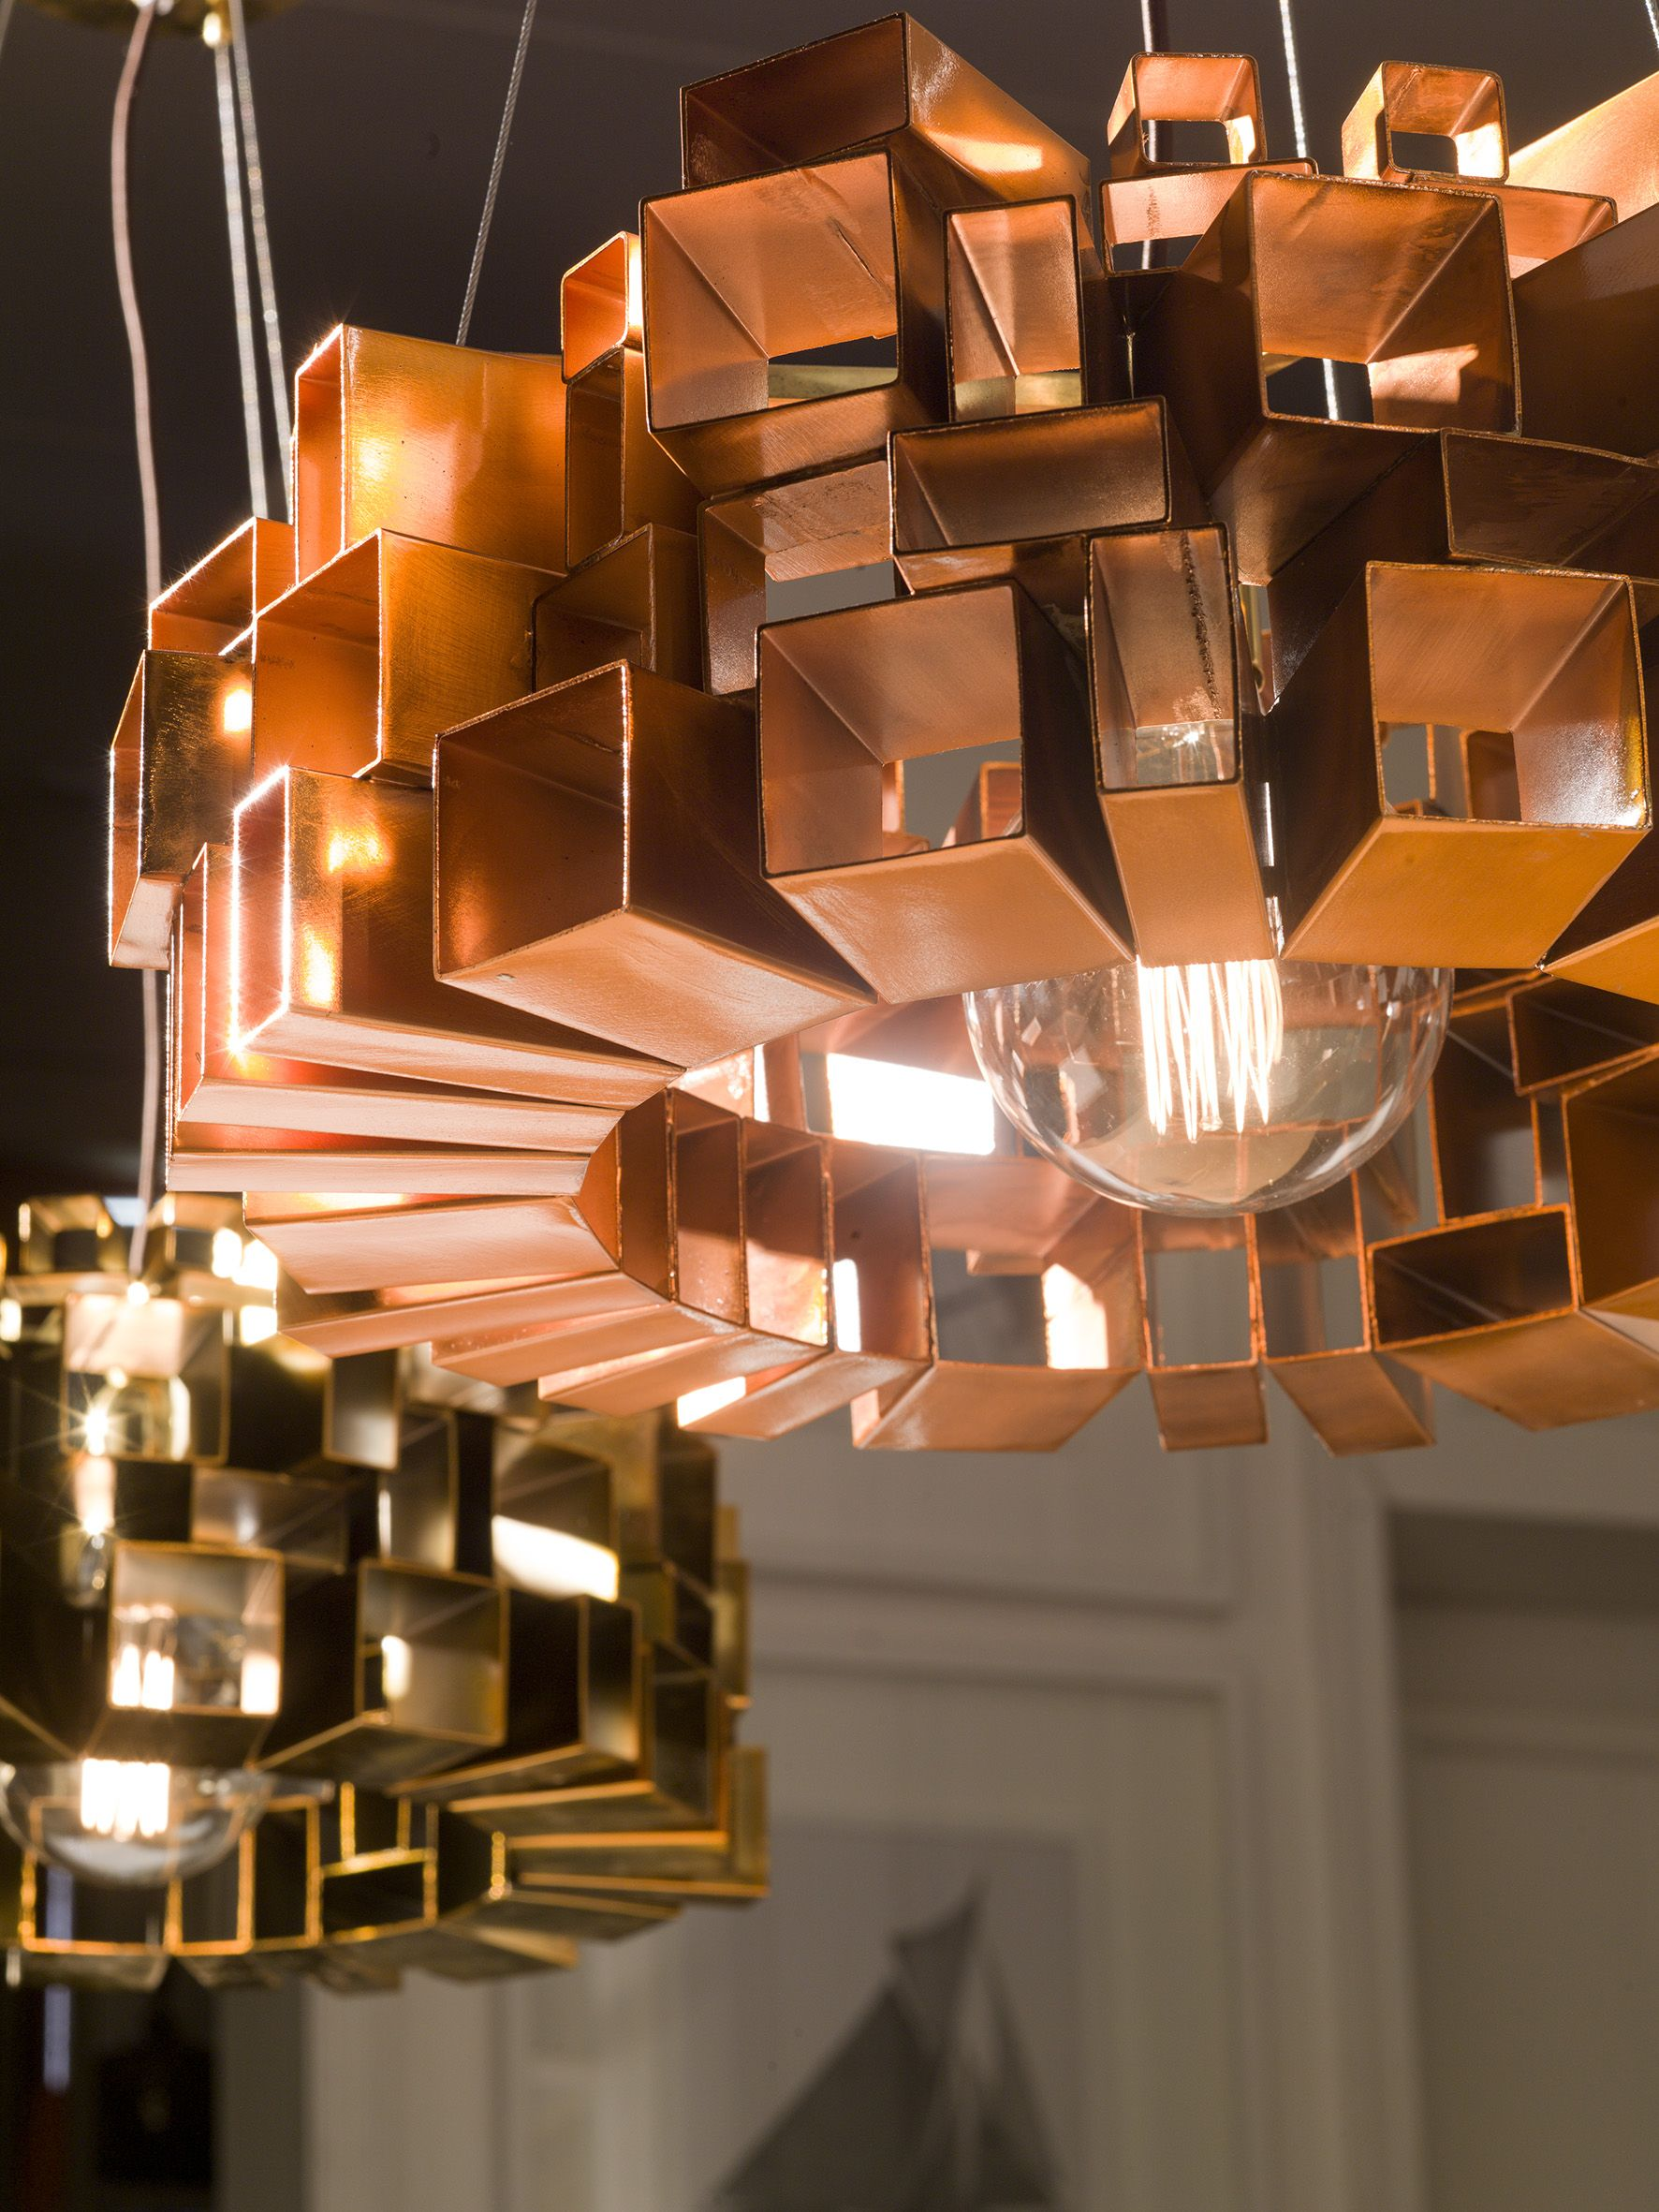 Pin by martin lukacka on design lighting pinterest lights lighting design light fixtures chandeliers lamps pendants industrial design light design lightbulbs chandelier lighting arubaitofo Choice Image